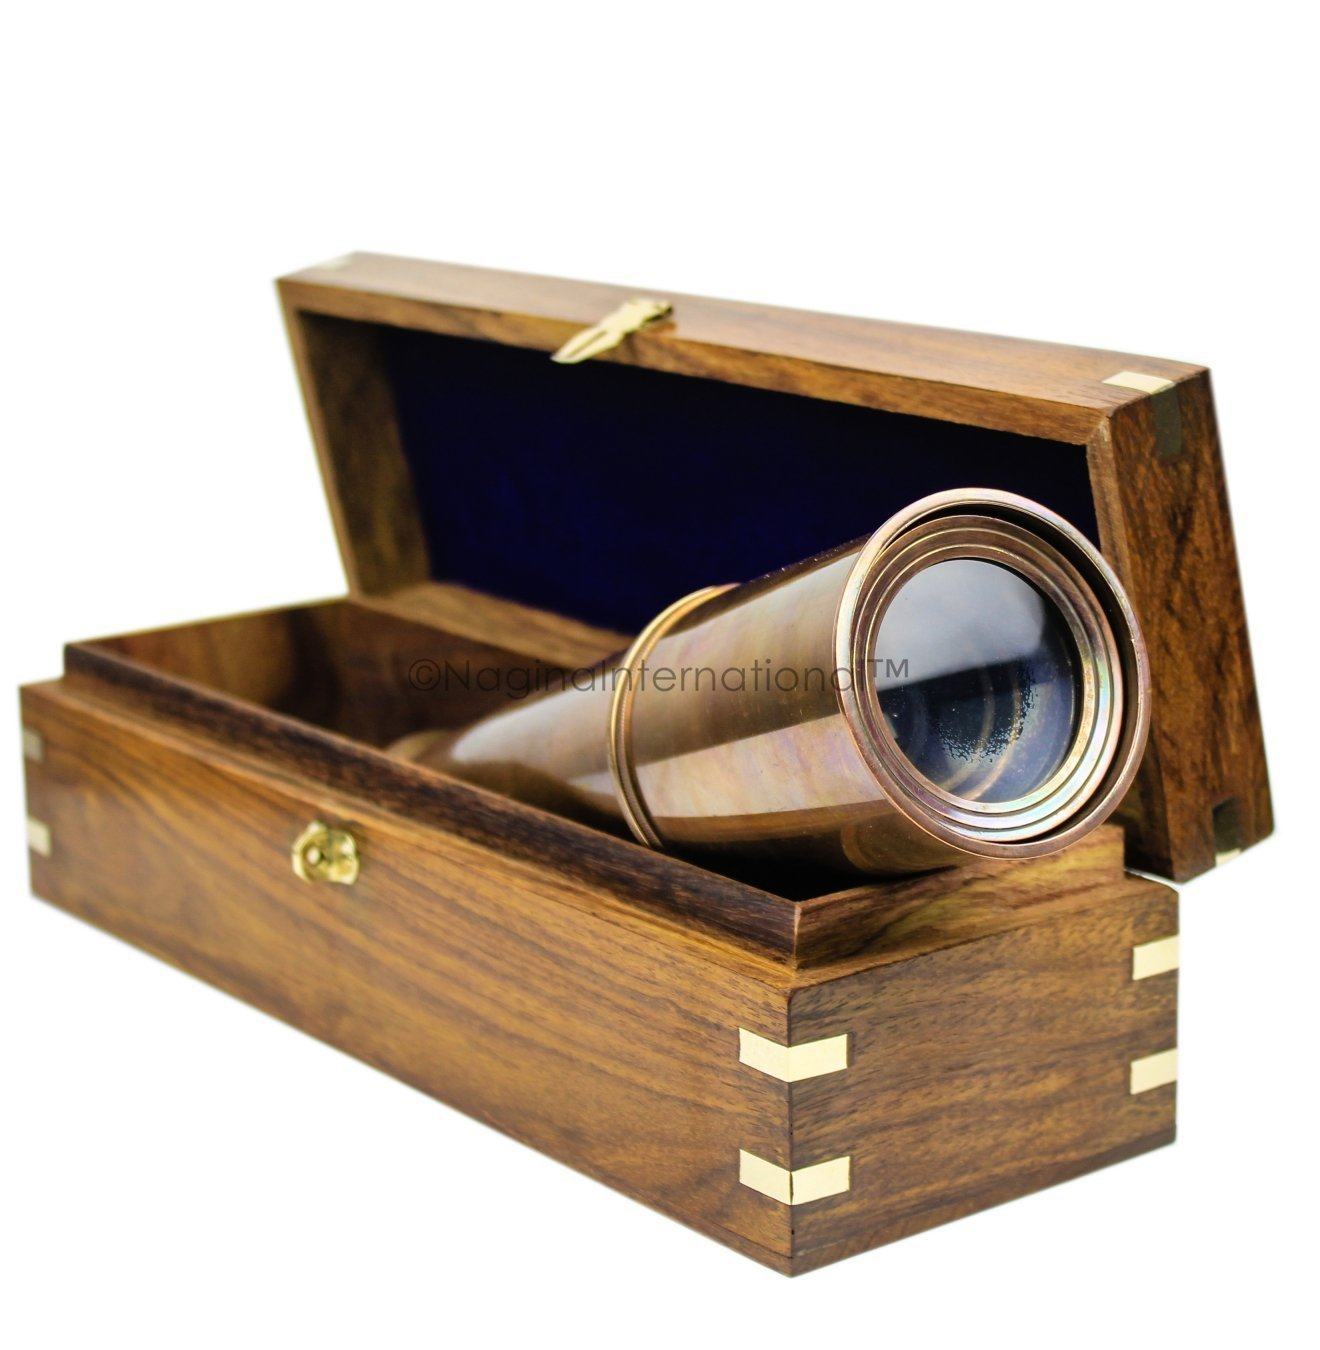 Nagina International Deluxe Nautical Pirate Boat Brass Spyglass with Functional Optical Zooms & Genuine Rosewood Storing Case Anchor Emblem Inlaid 32 Inches, Antique Brass (W/Box) by Nagina International (Image #6)